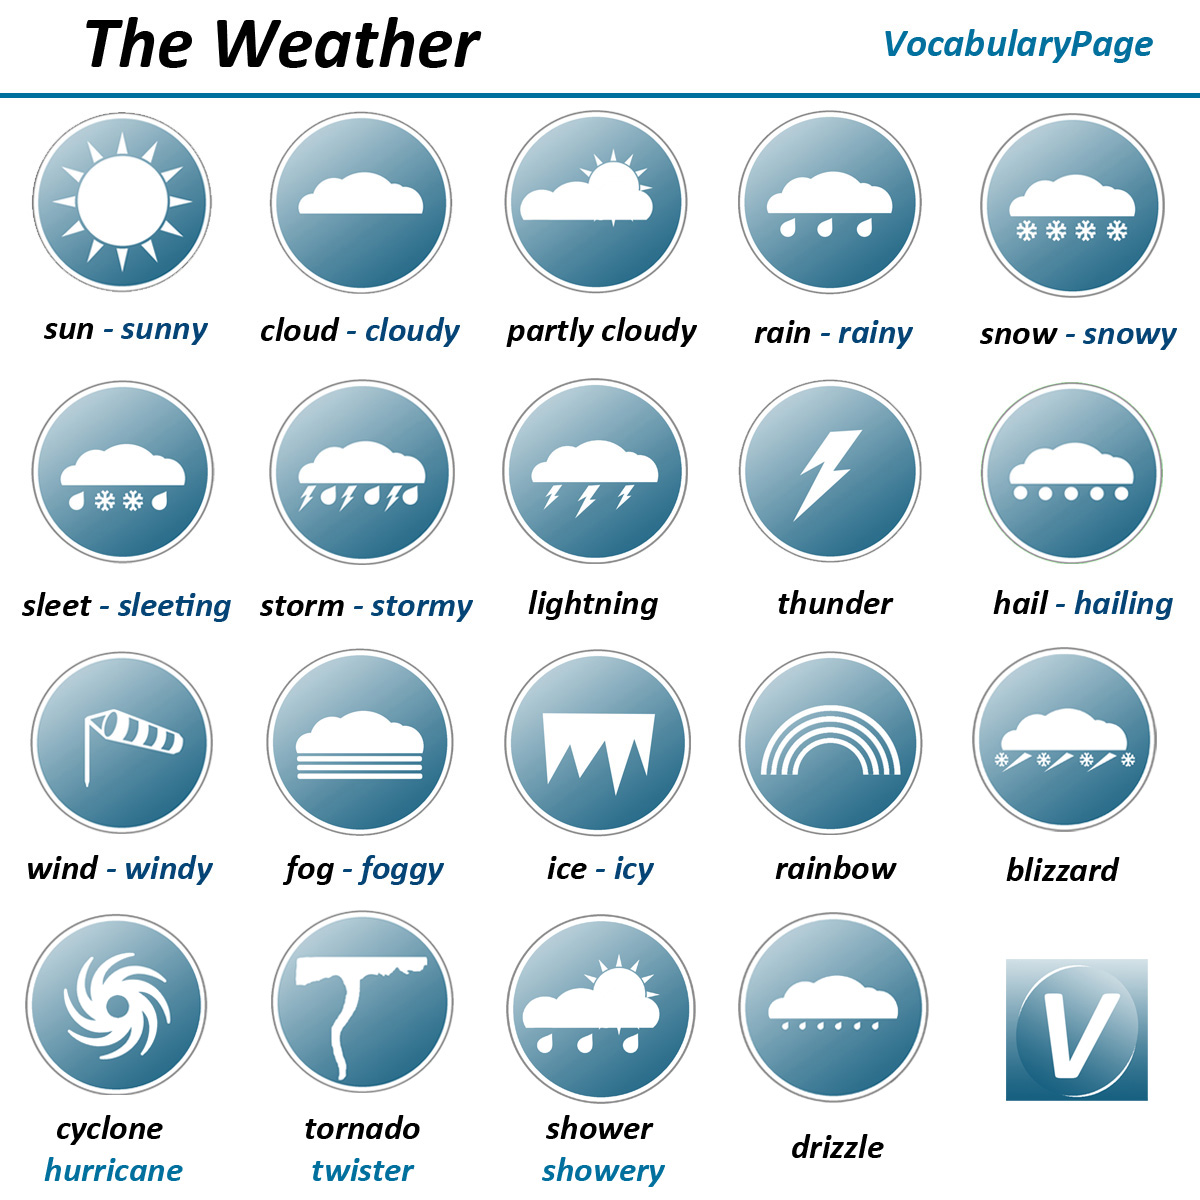 Wind Vocabulary Worksheet